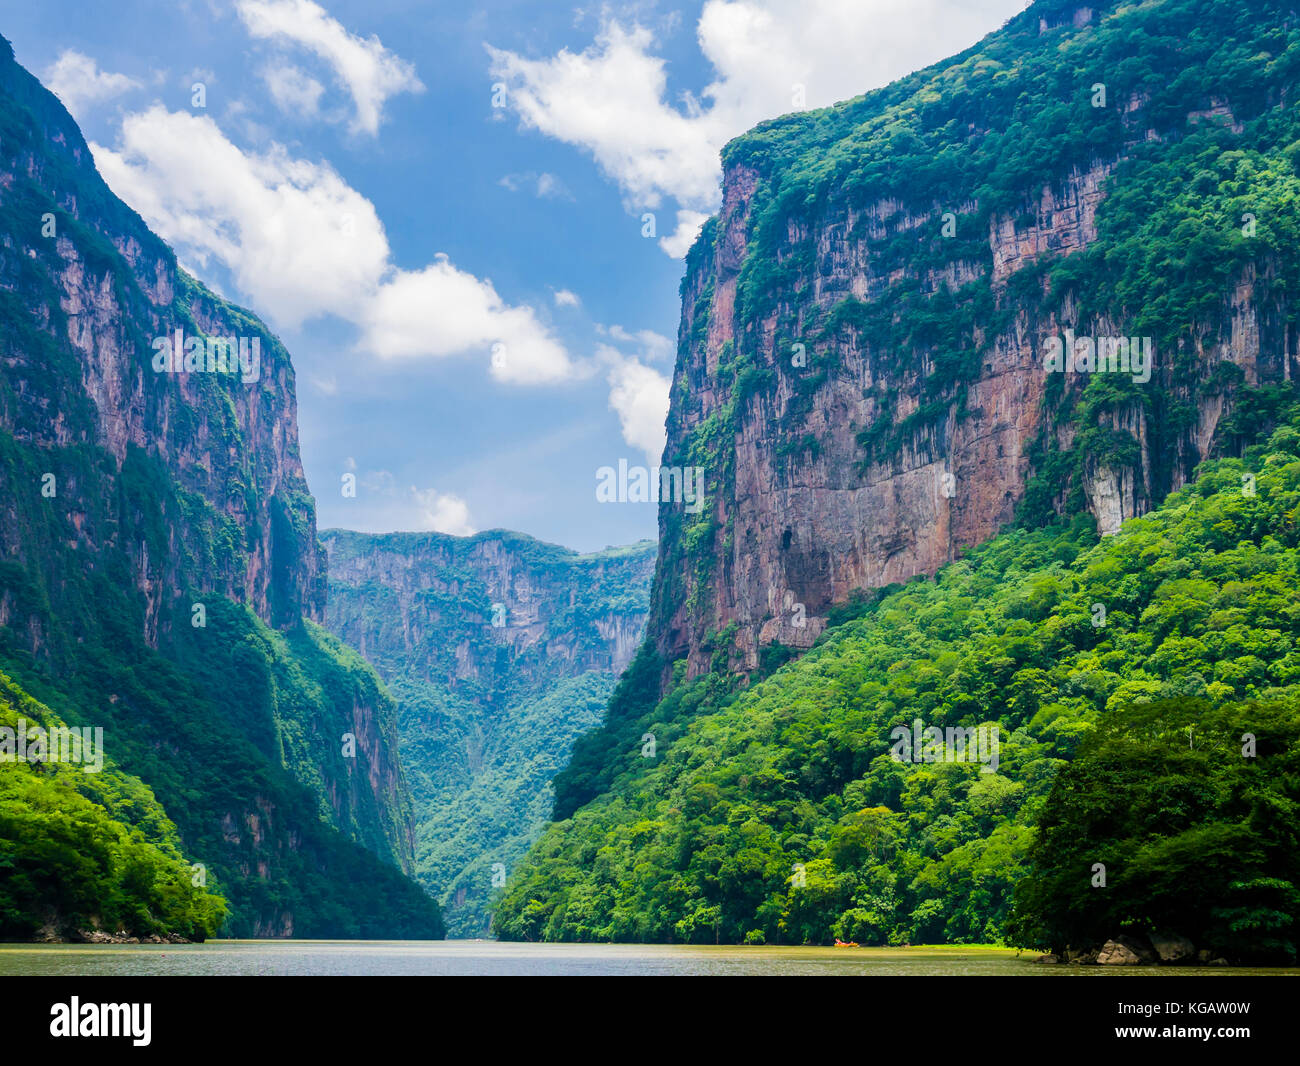 Stunning view of Sumidero Canyon from Grijalva river, Chiapas, Mexico - Stock Image